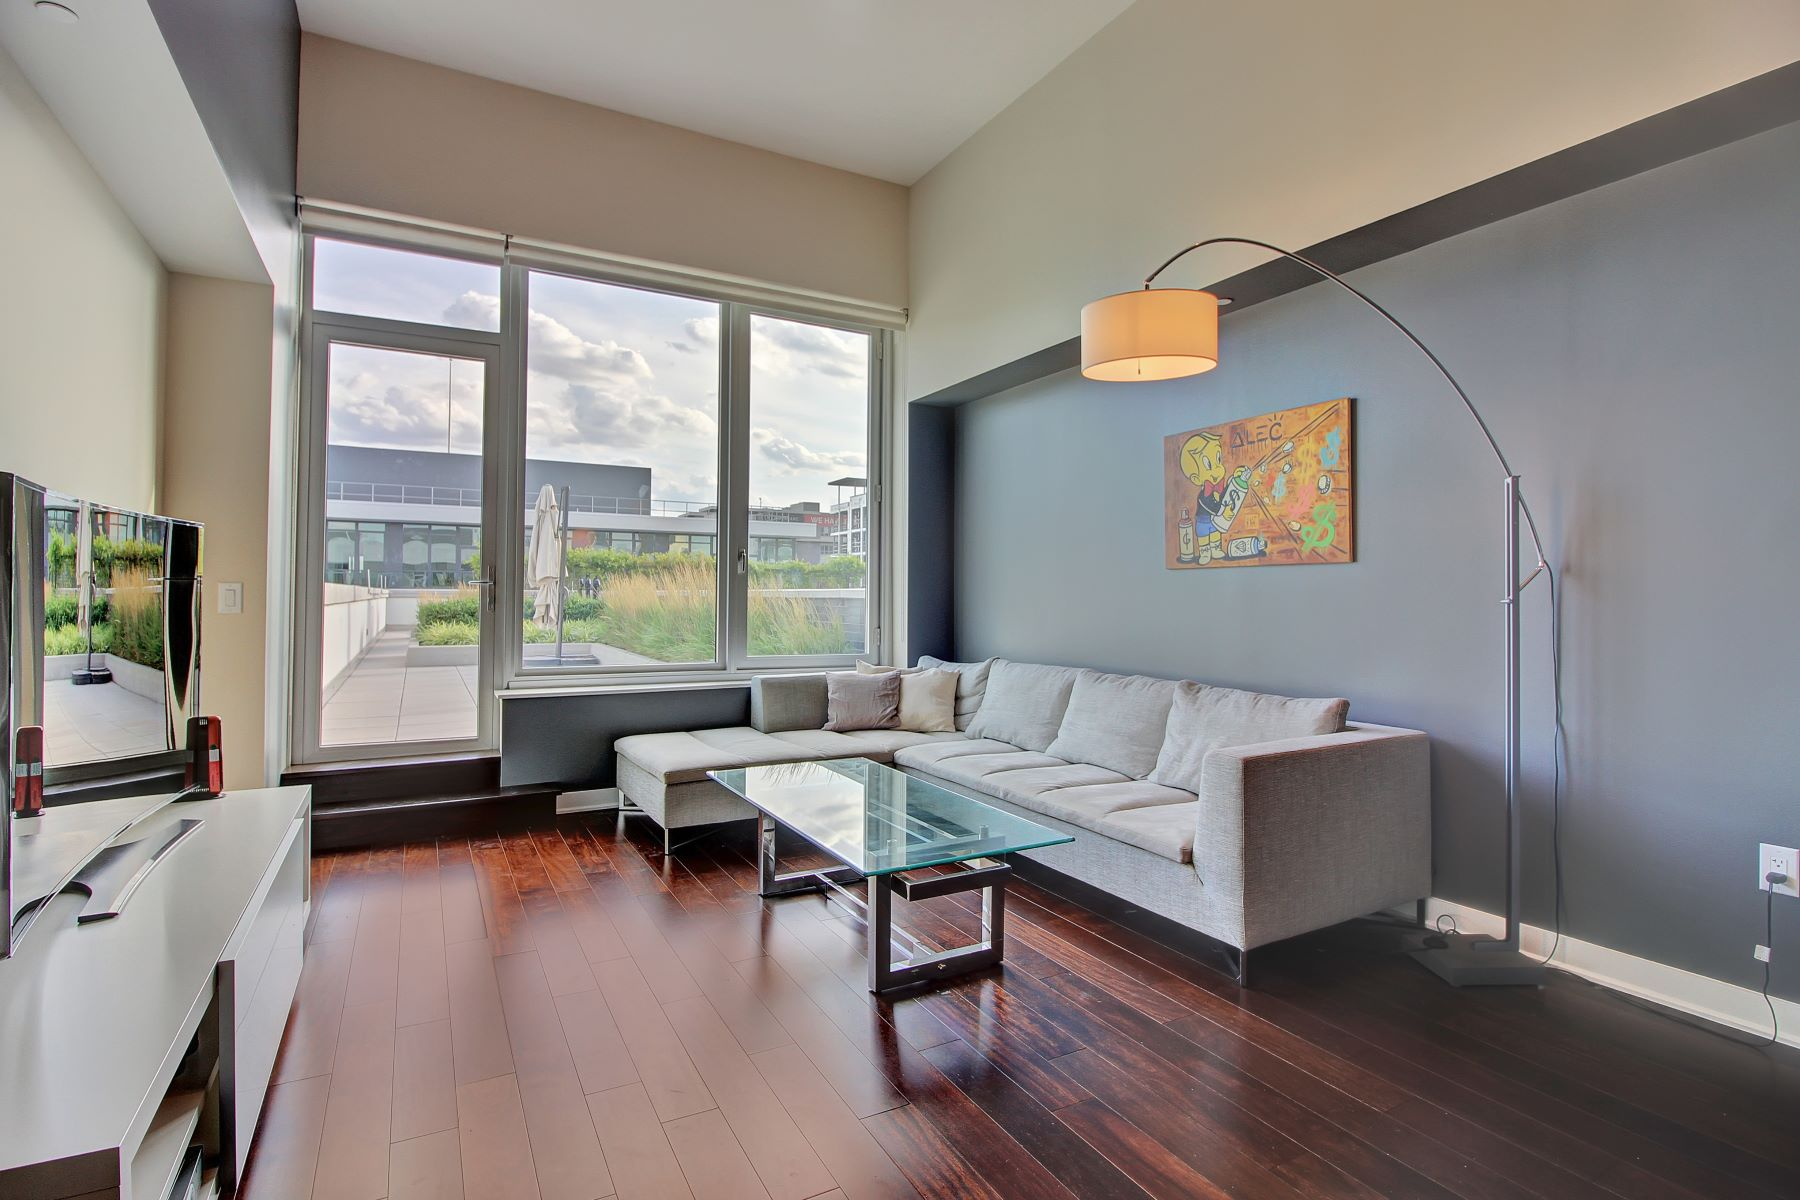 Condominium for Sale at Pure Luxury Two Bedroom Penthouse 1000 Avenue At Port Imperial #709 Weehawken, New Jersey 07086 United States